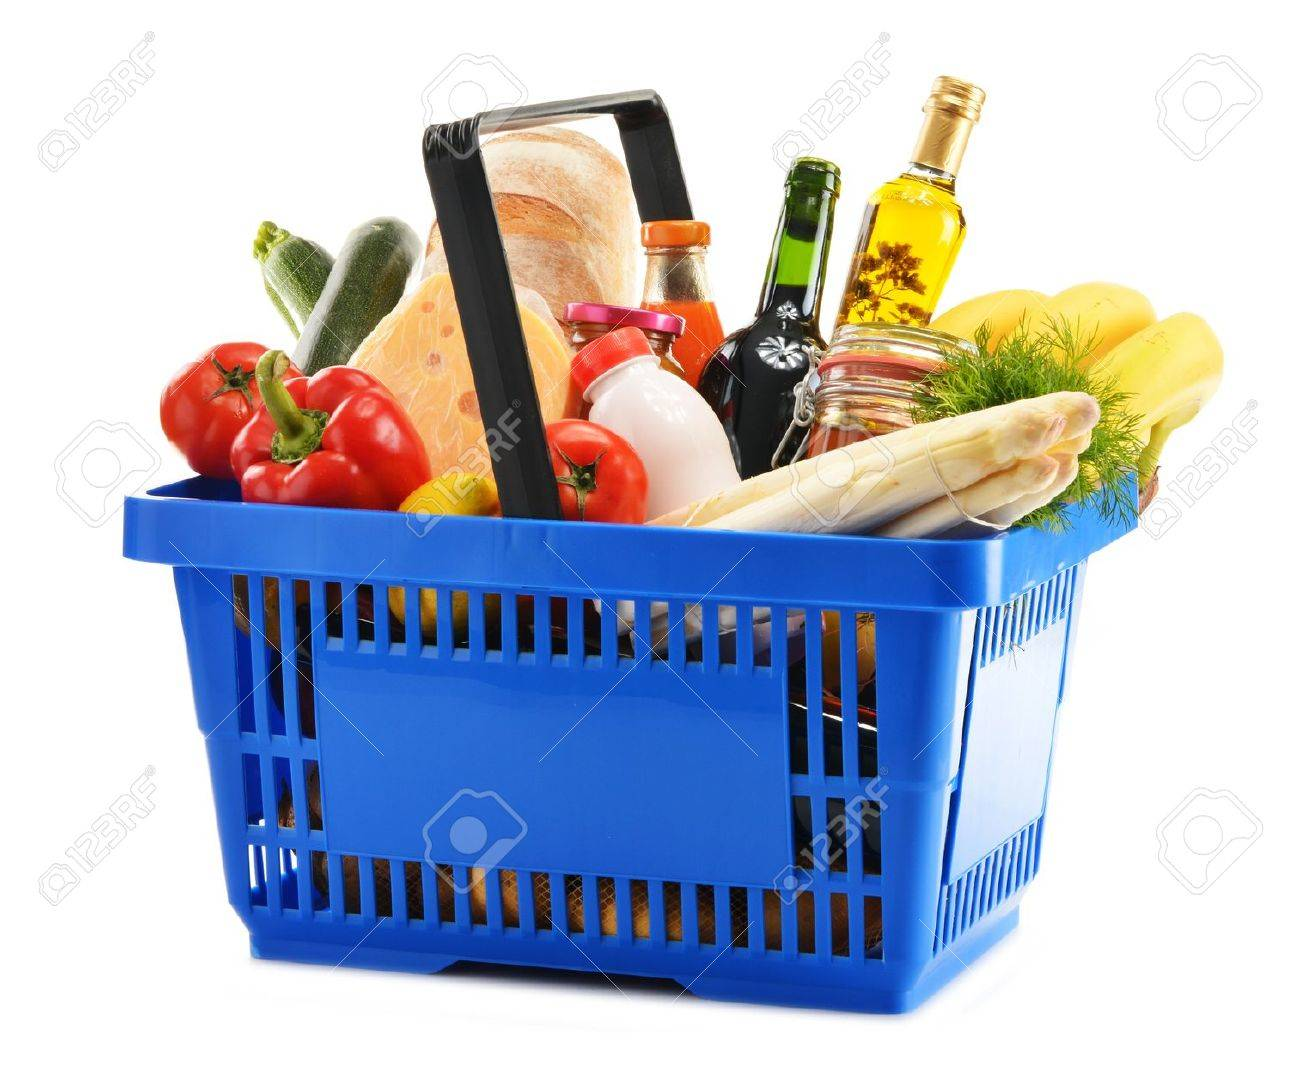 Plastic shopping basket with variety of grocery products isolated on white - 20329976